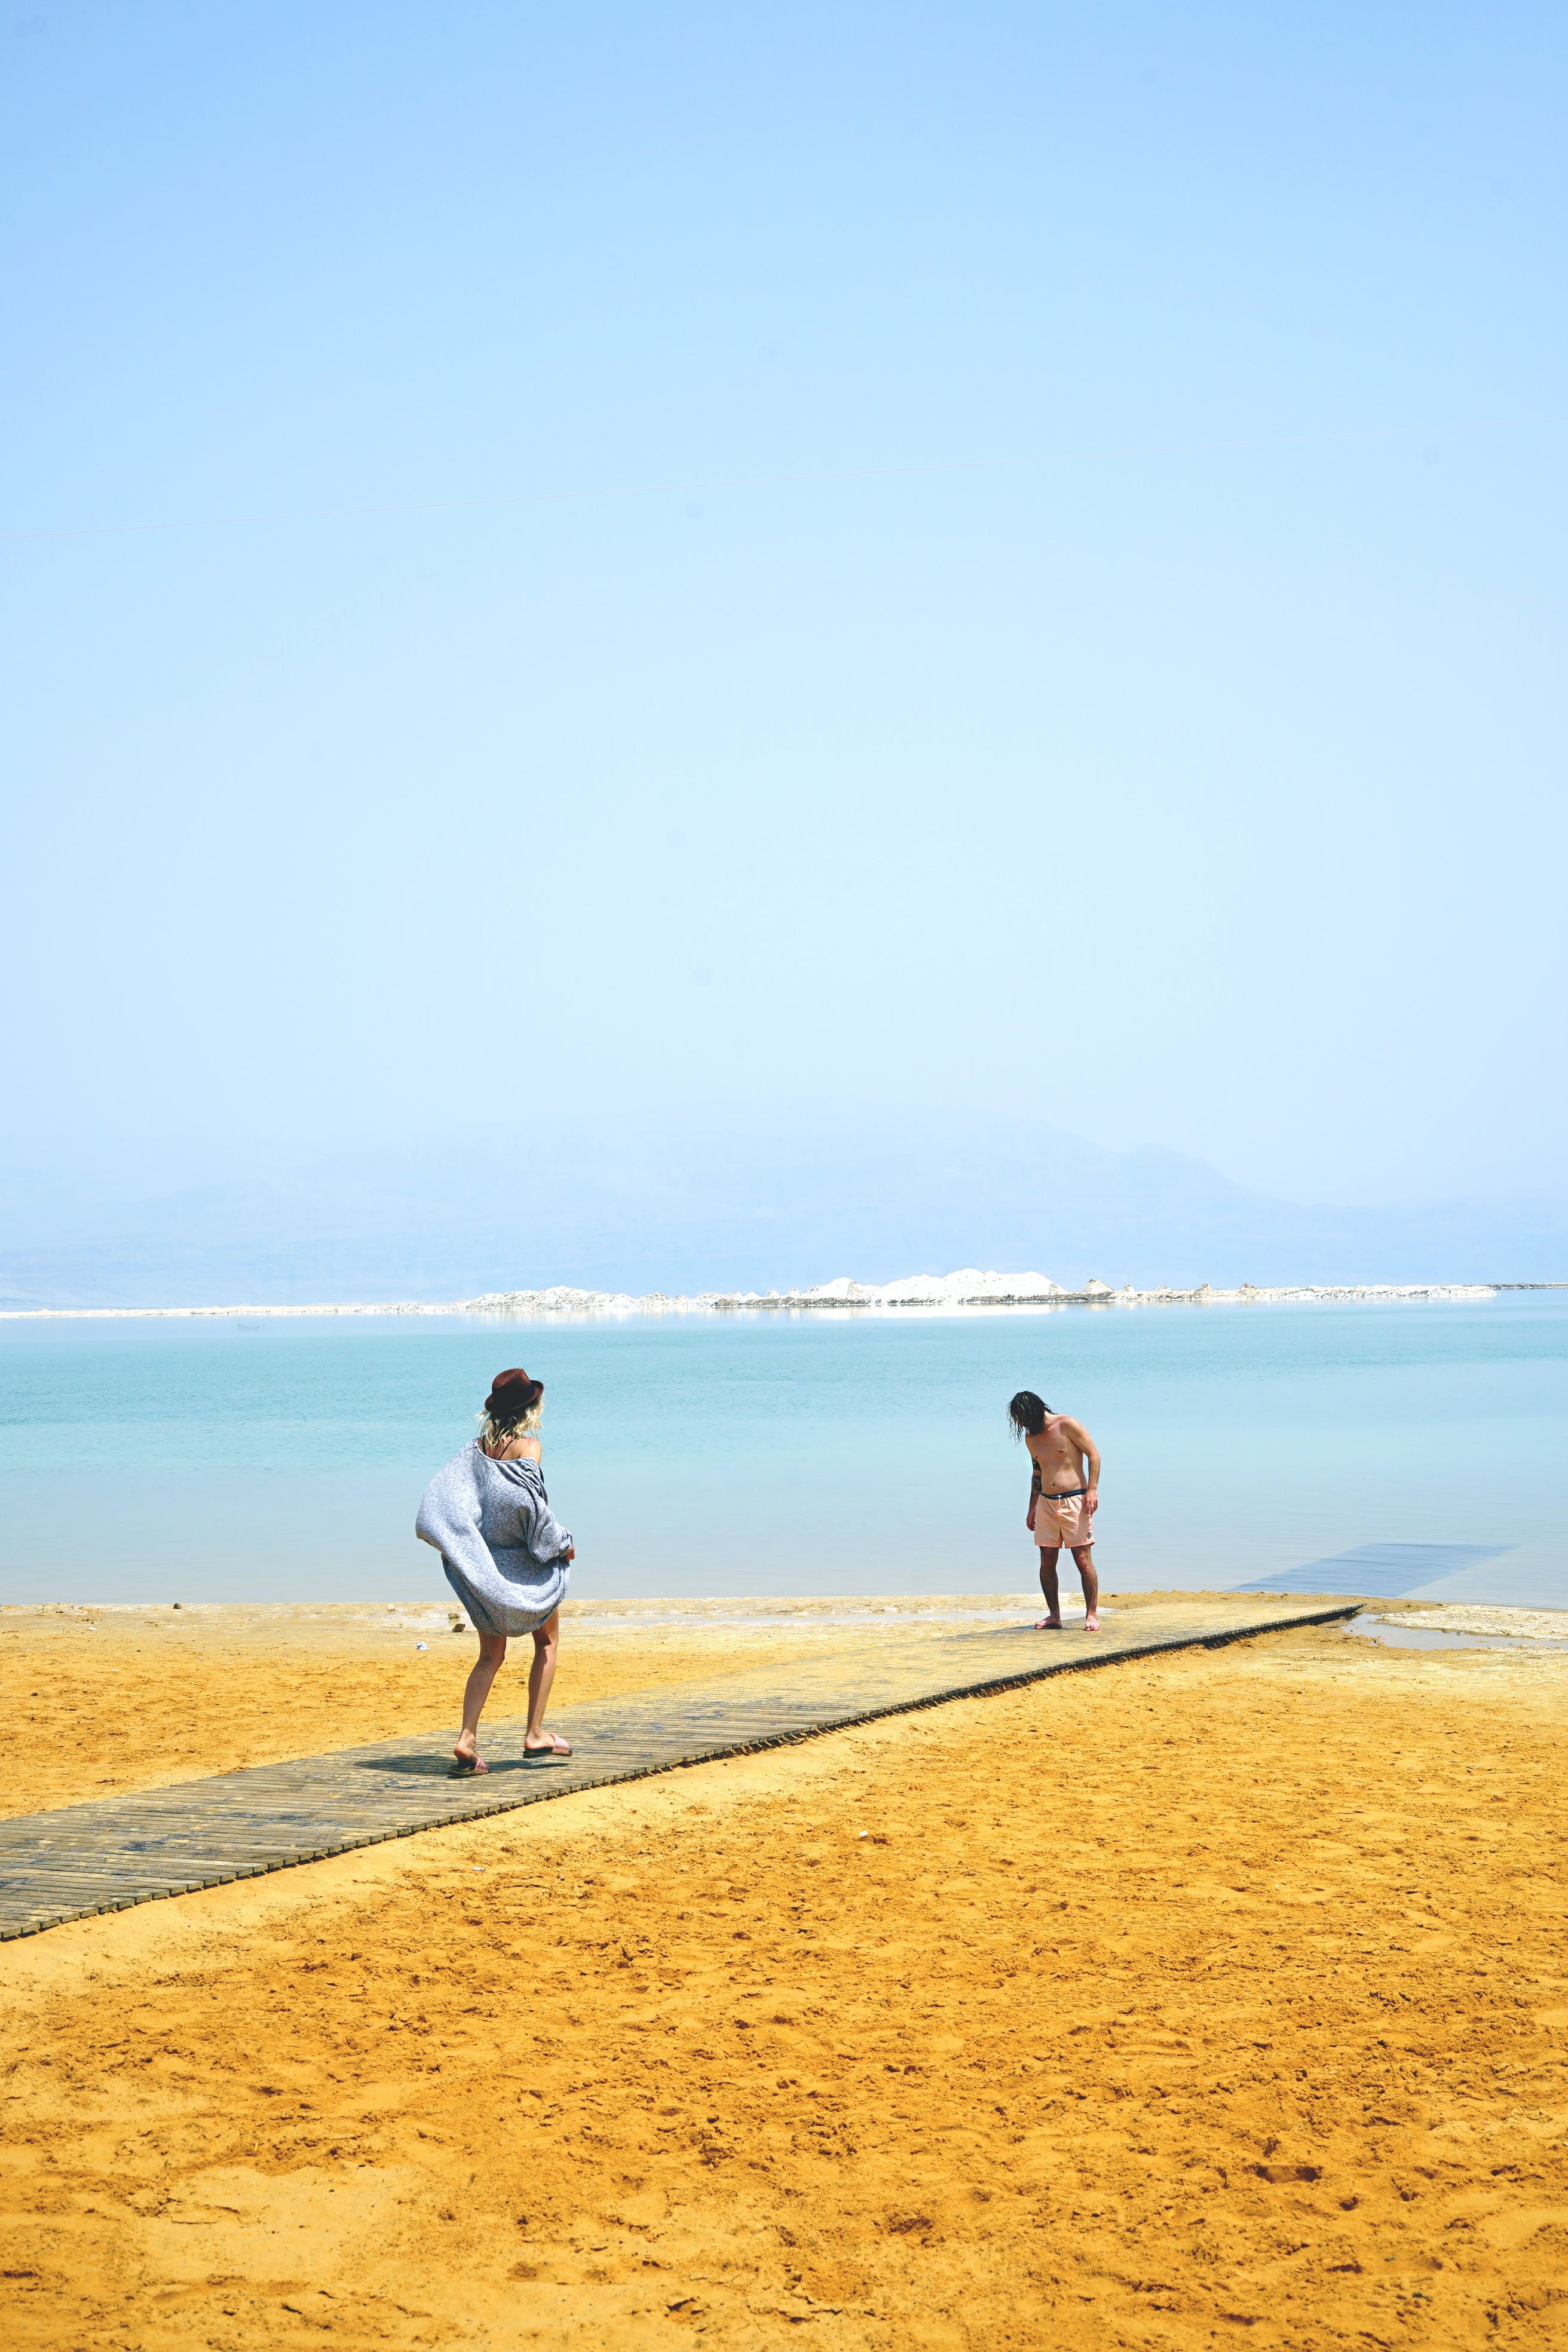 Two Person Standing on the Beach